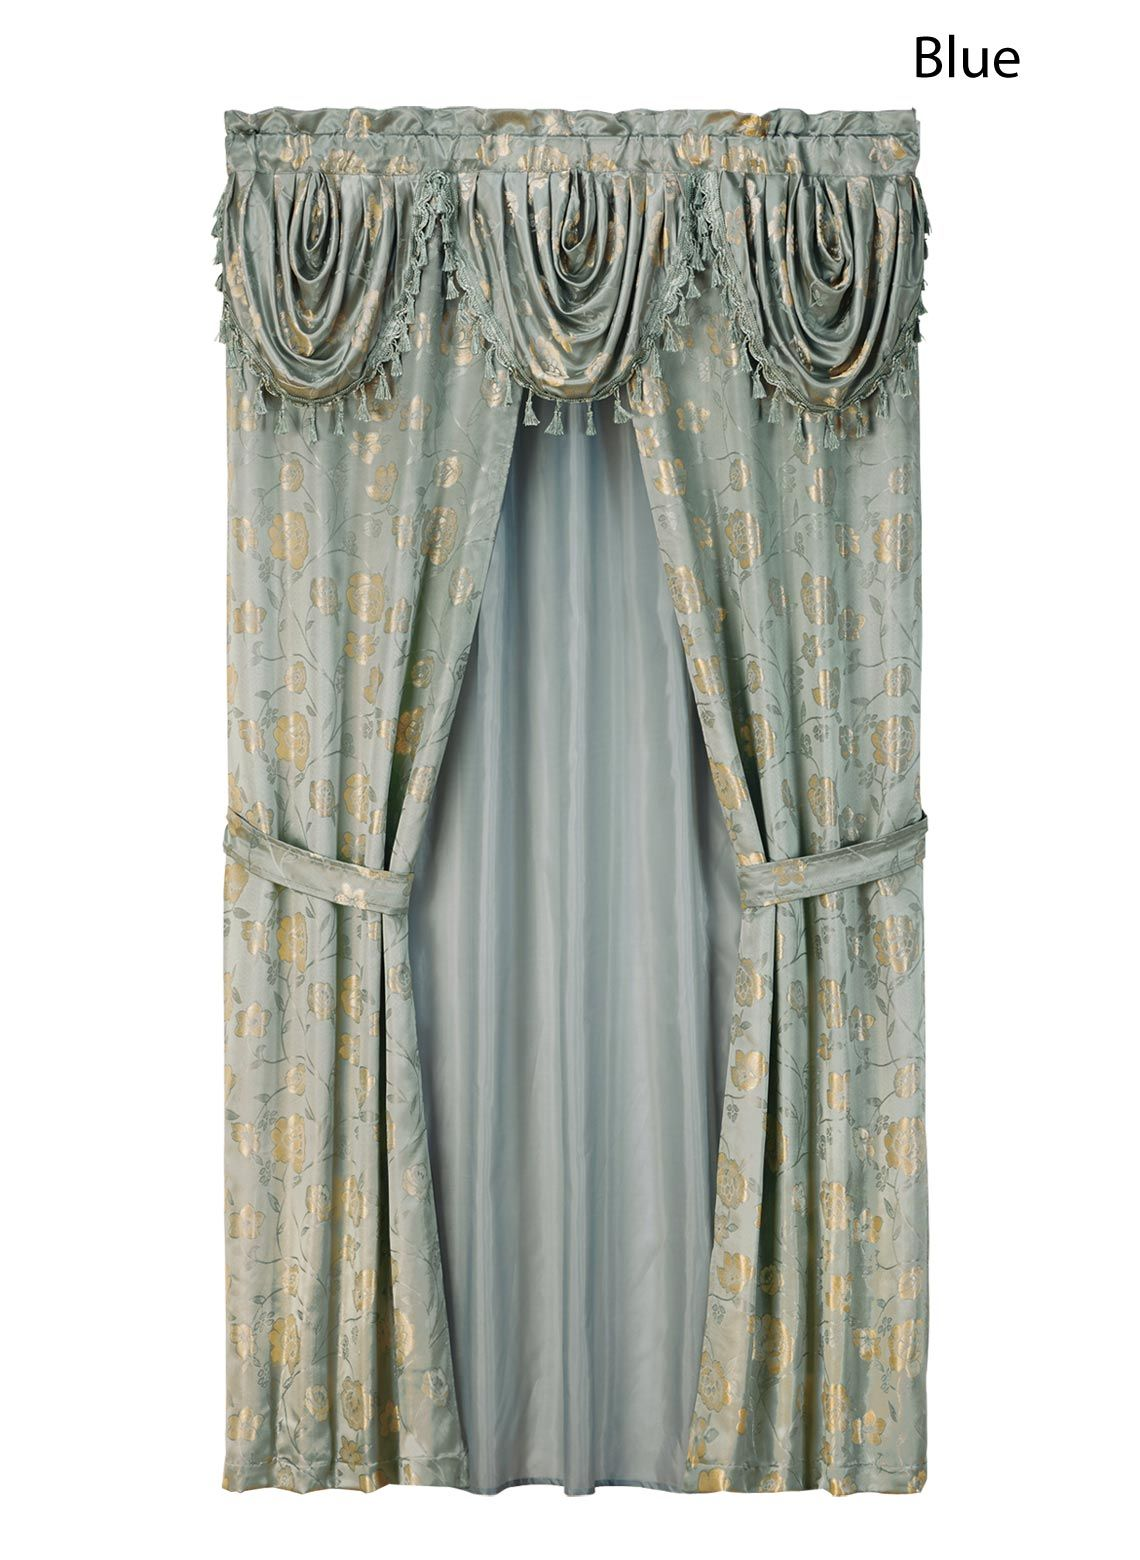 All In One Jacquard Curtain Set 20 00 Curtain Sets Curtains